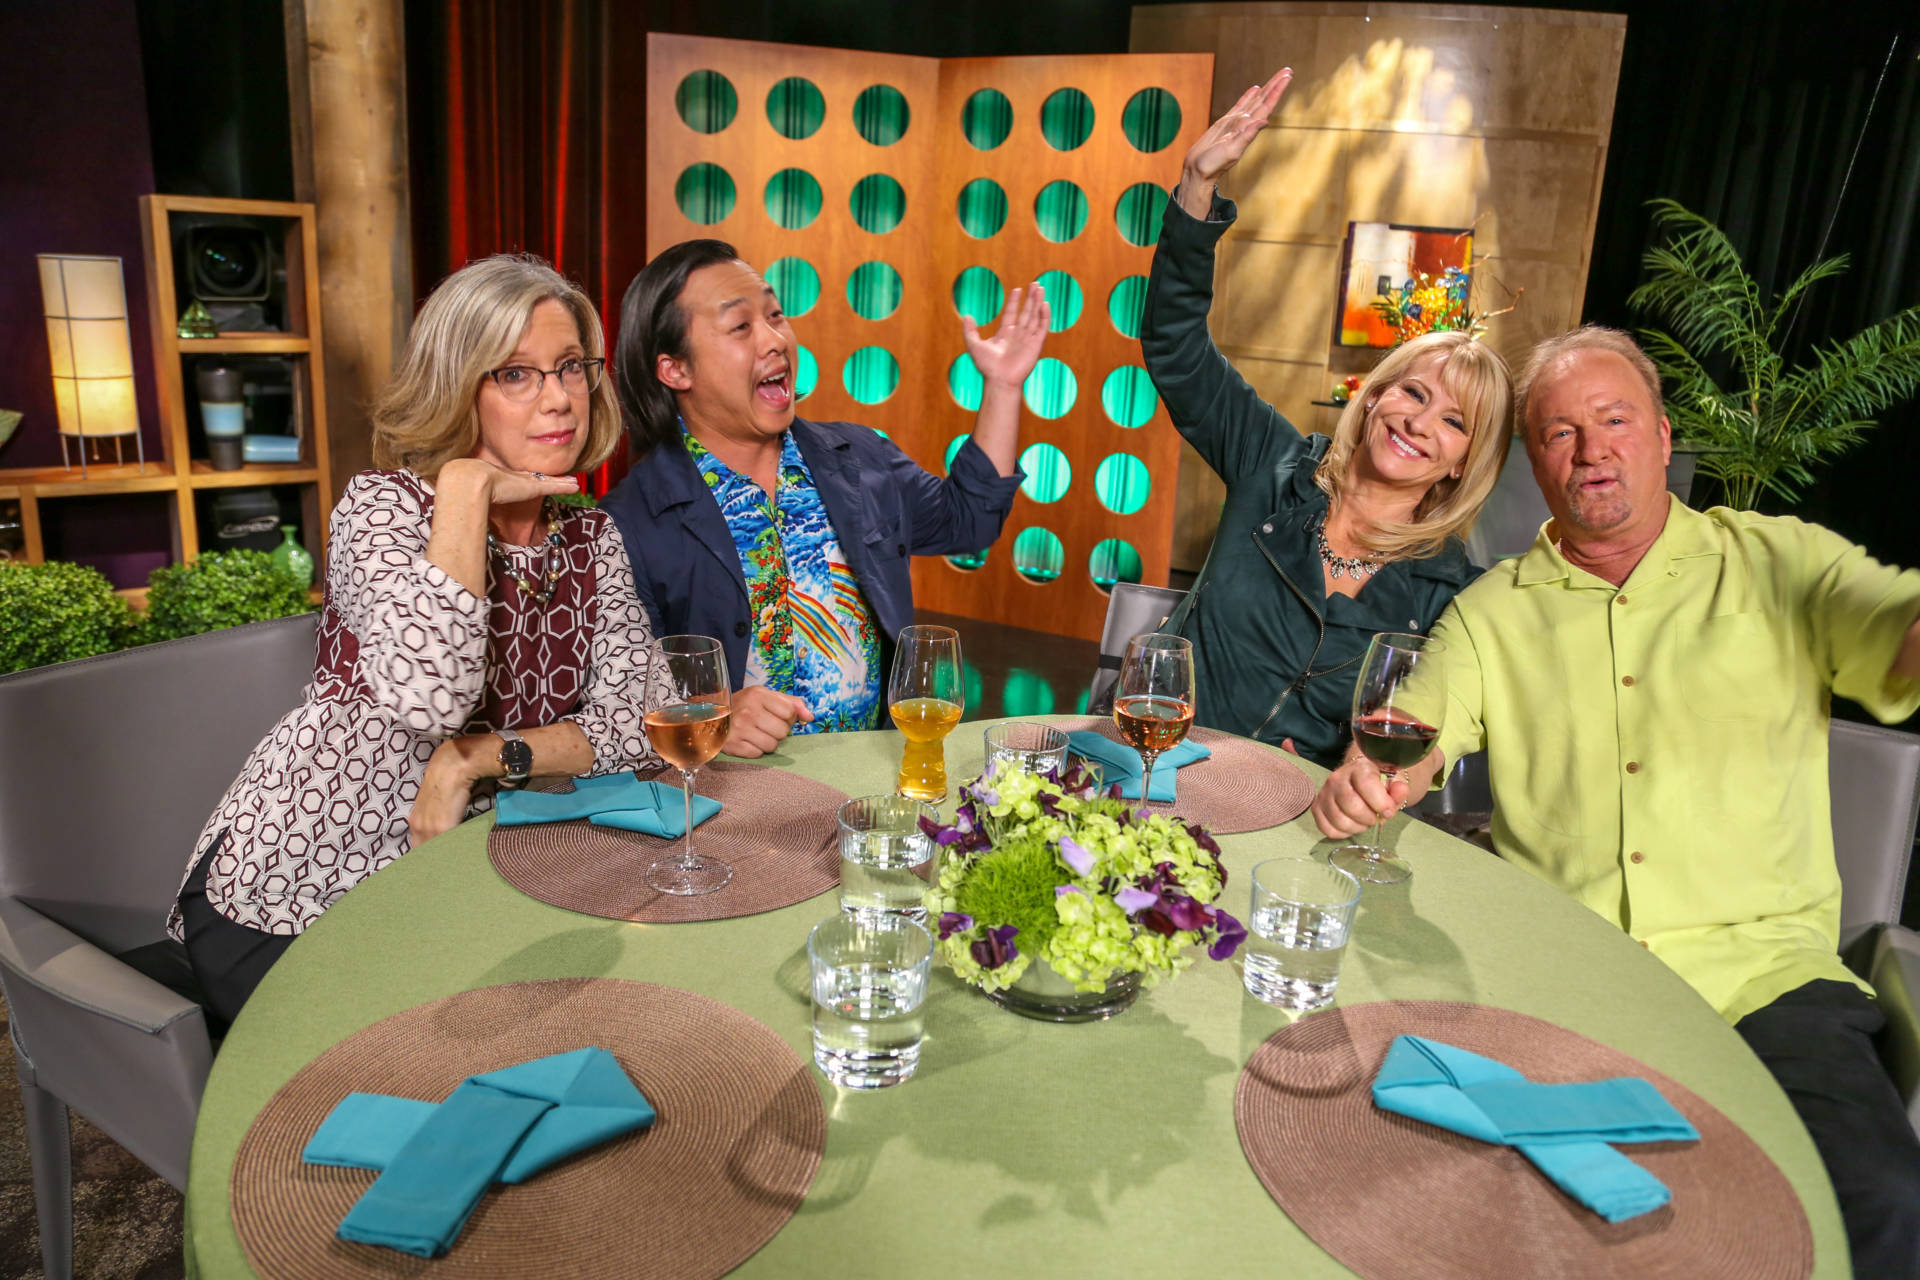 Host Leslie Sbrocco and guests on the set of season 13 episode 15.